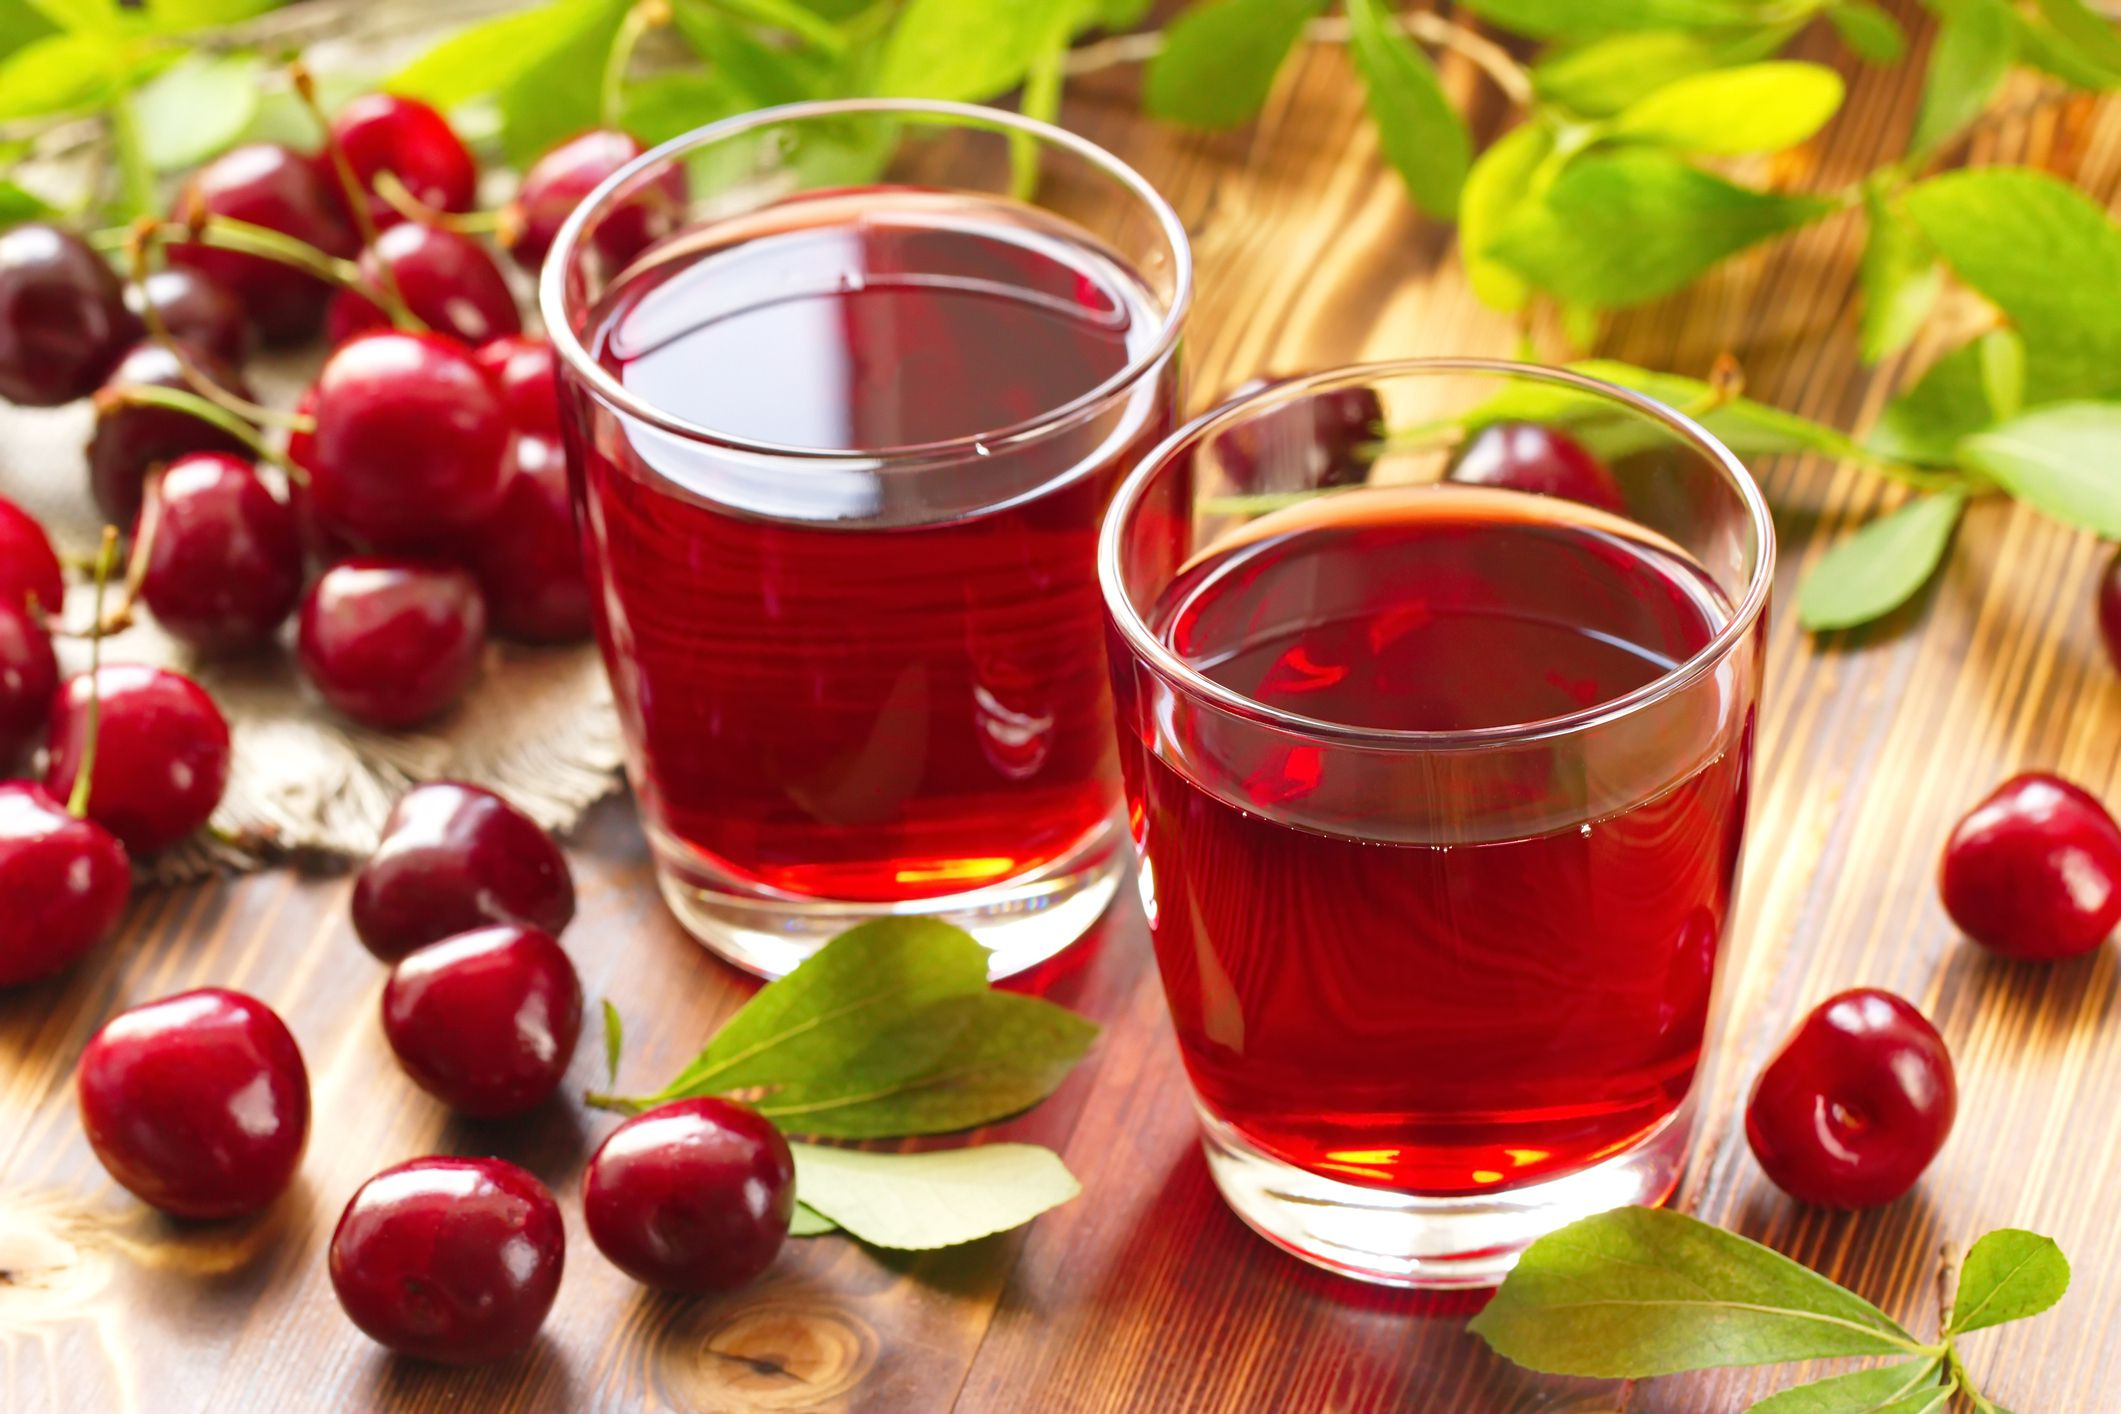 Health Benefits of Cherry Juice for Arthritis and Gout